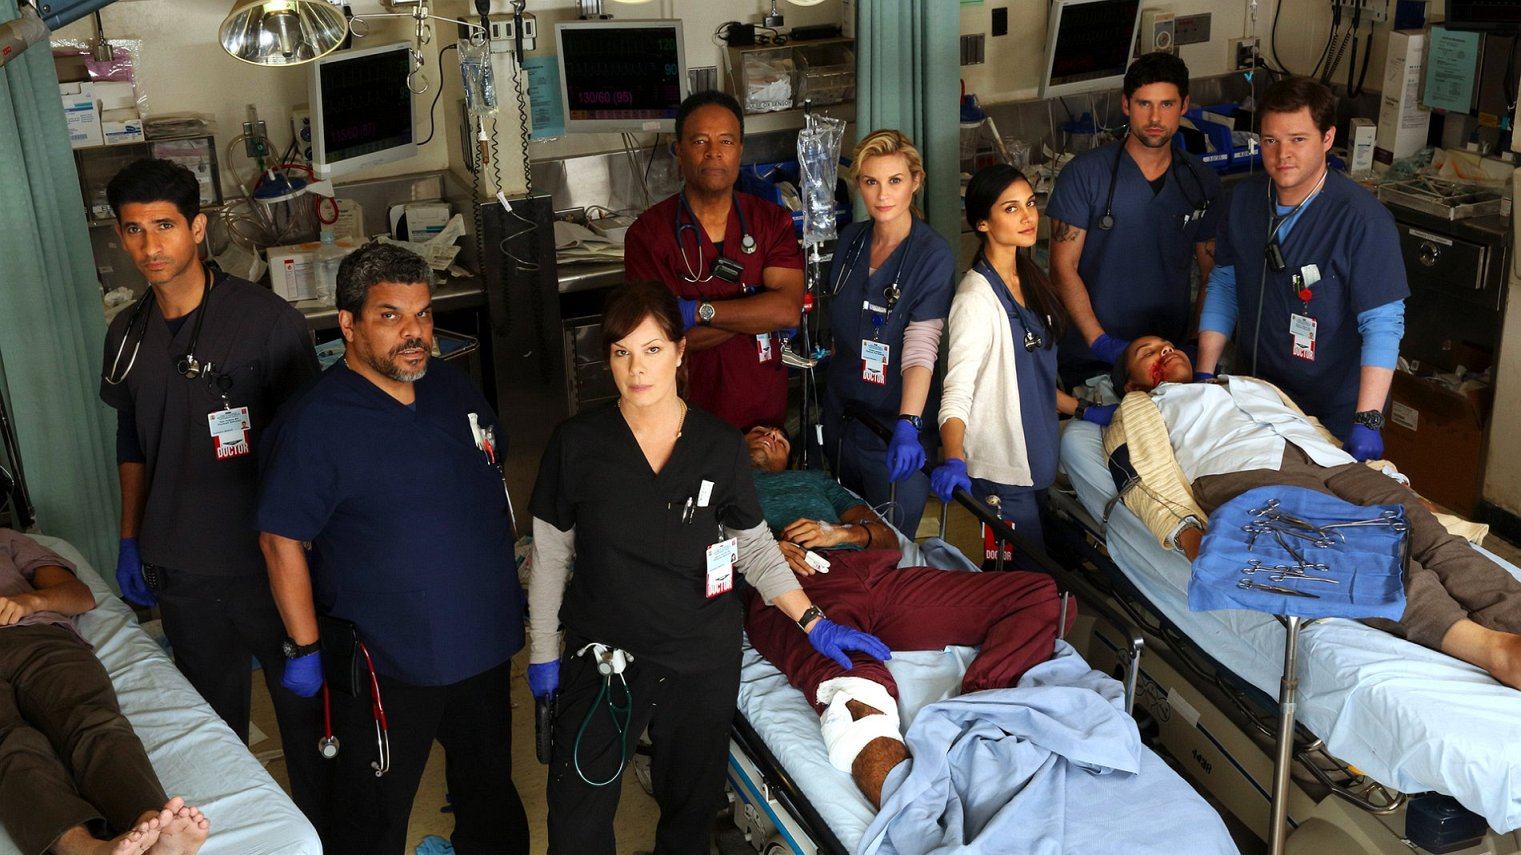 when does Code Black return